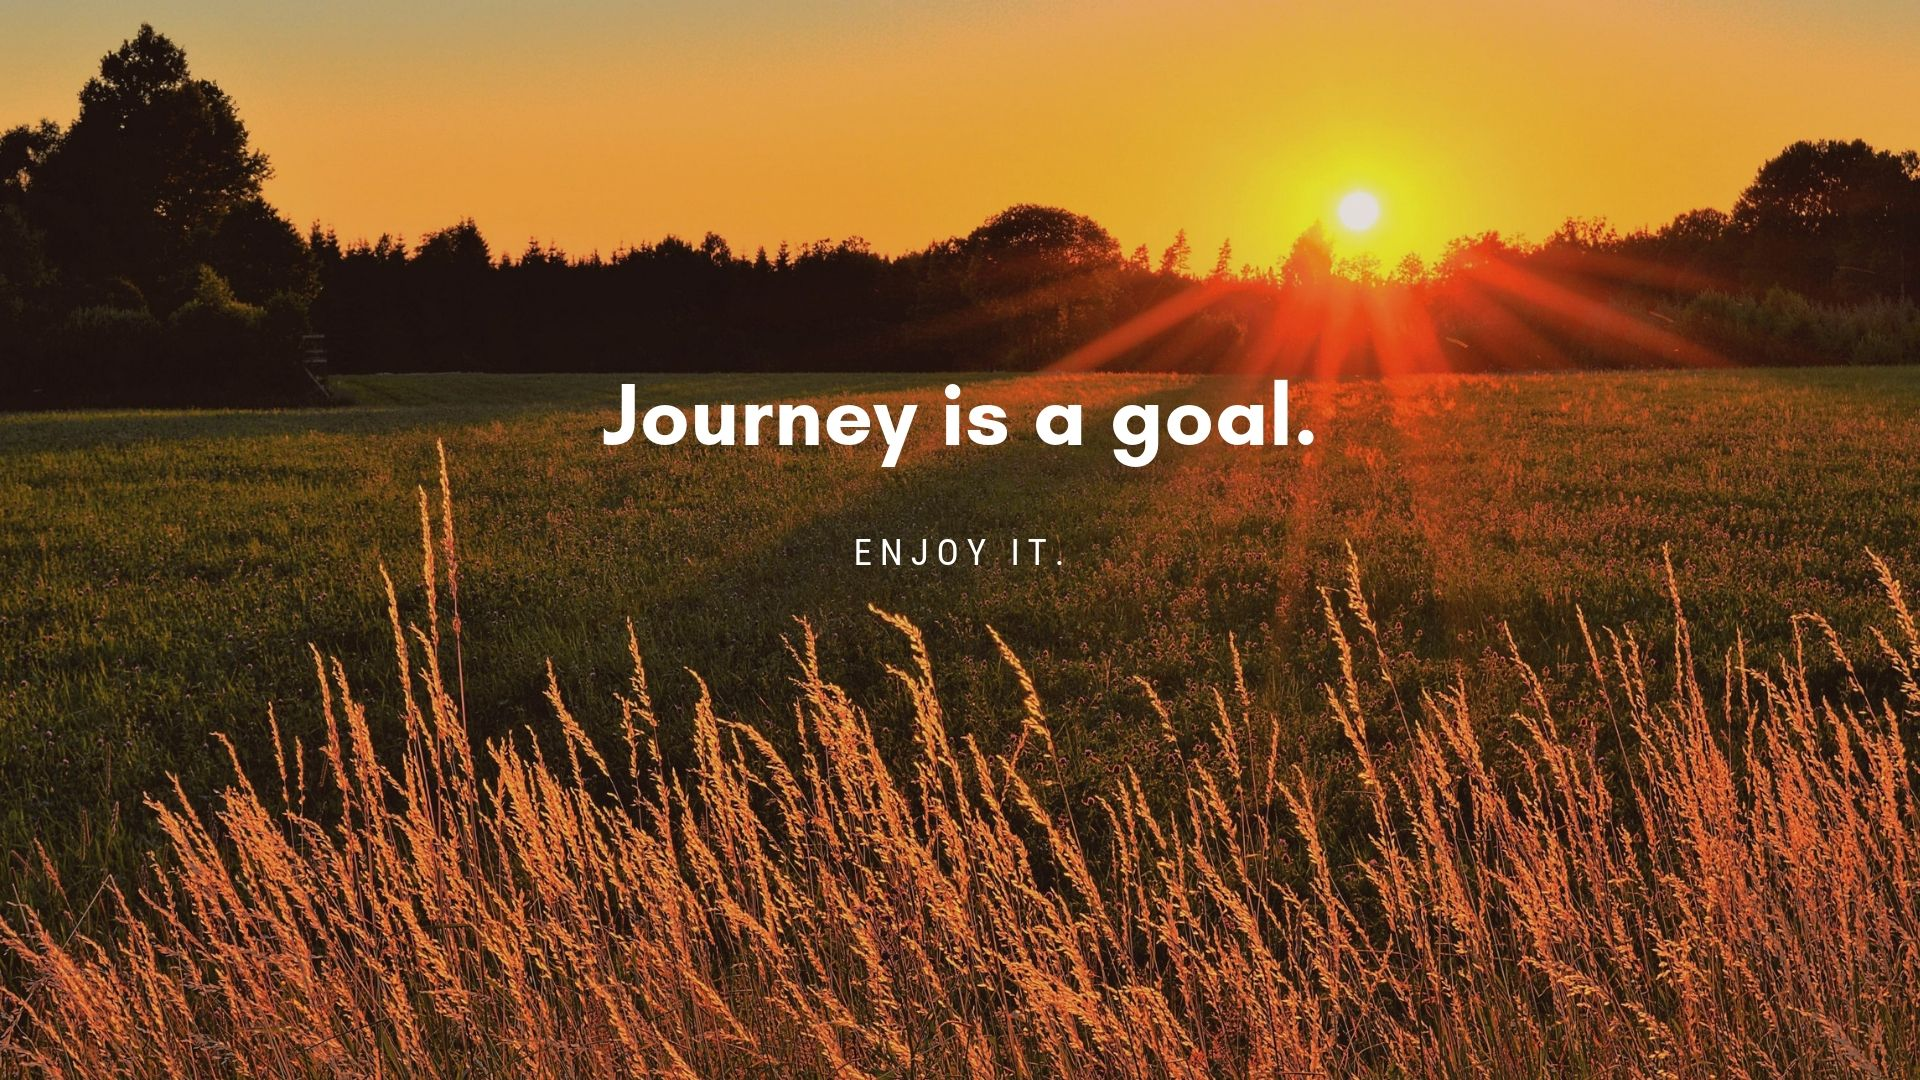 Journey is a goal free wallpaper